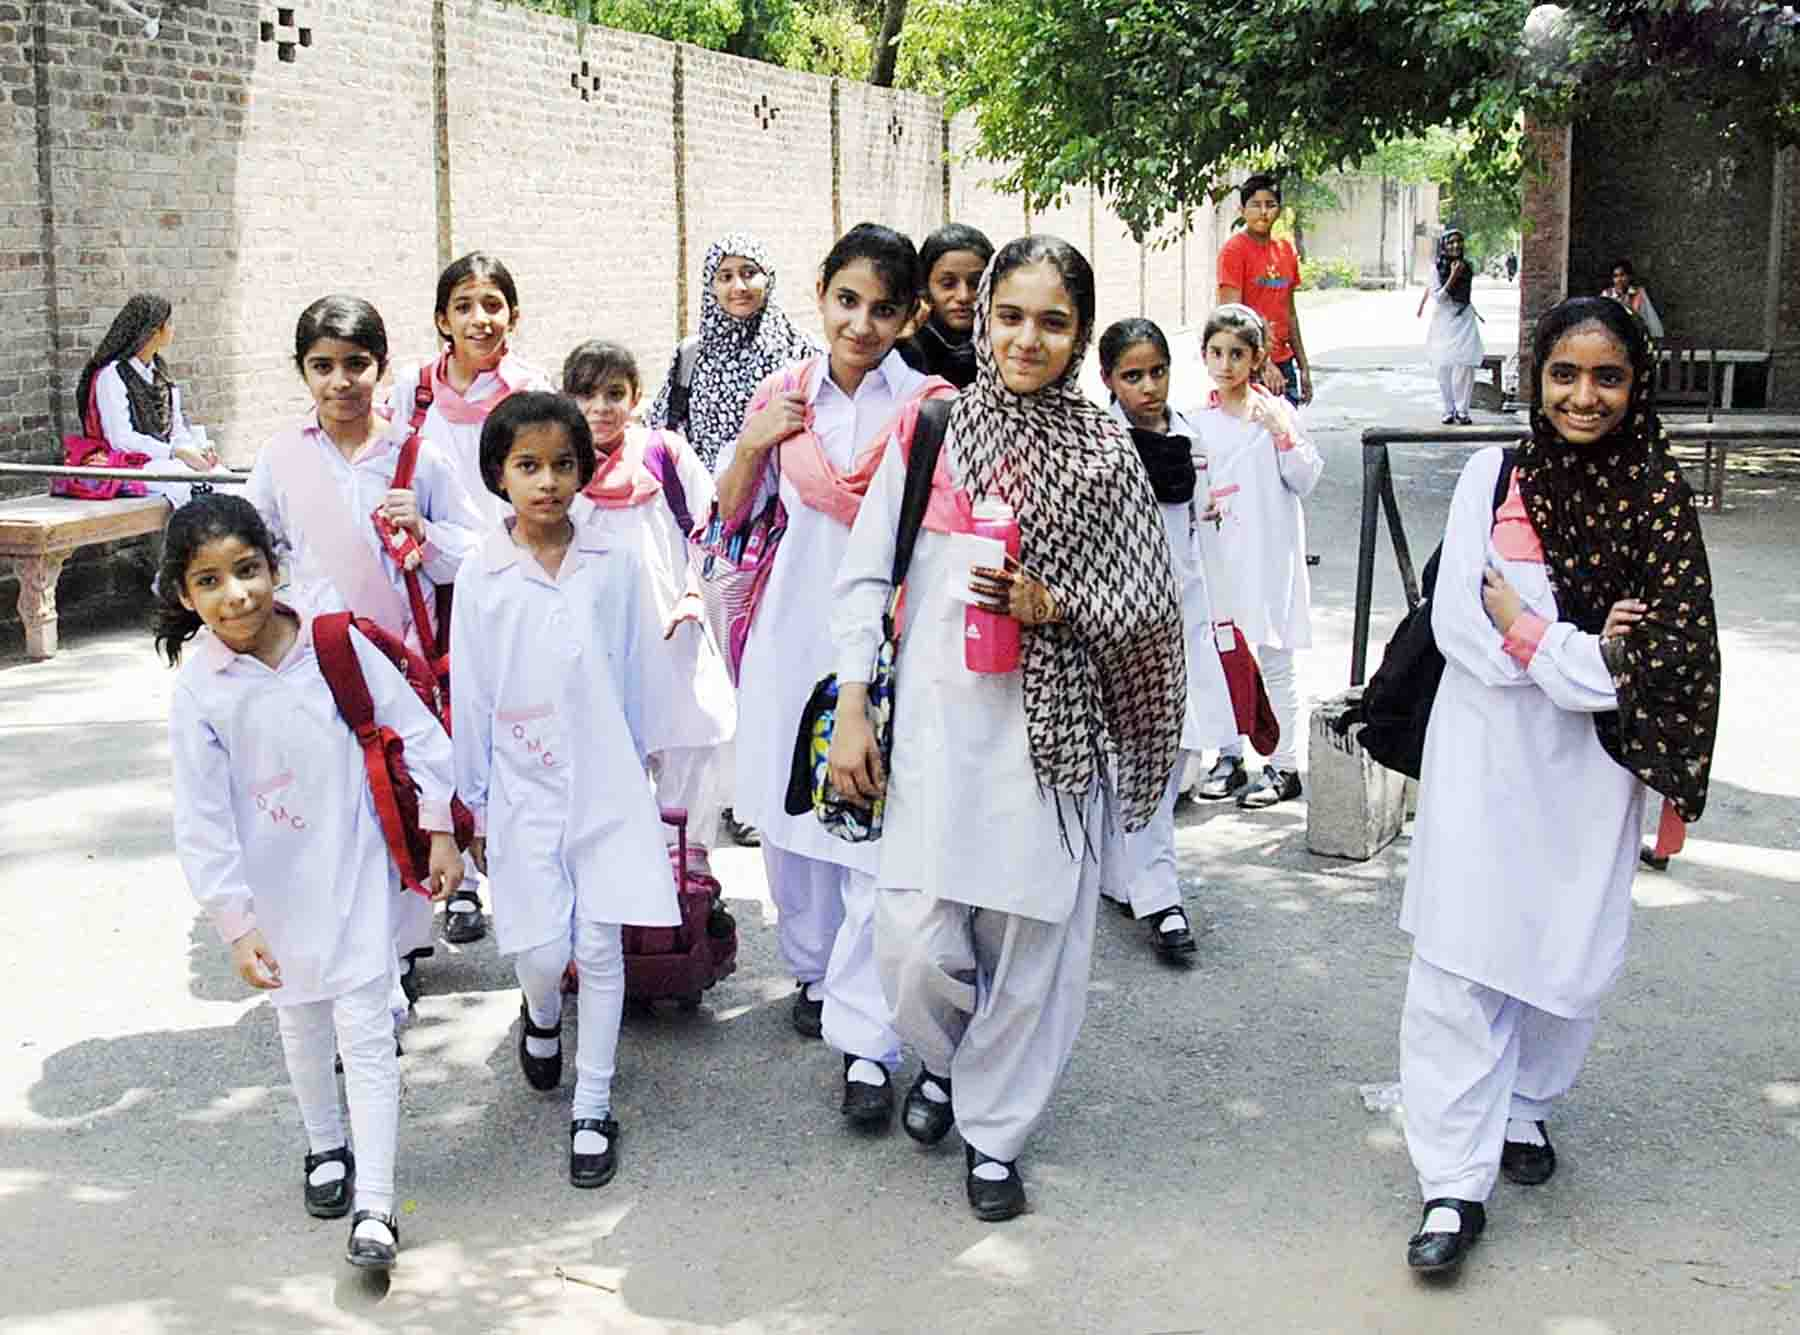 List of schools in Lahore, LAHORE SCHOOLS LIST , IN CITY DISTRICT GOVT. LAHORE